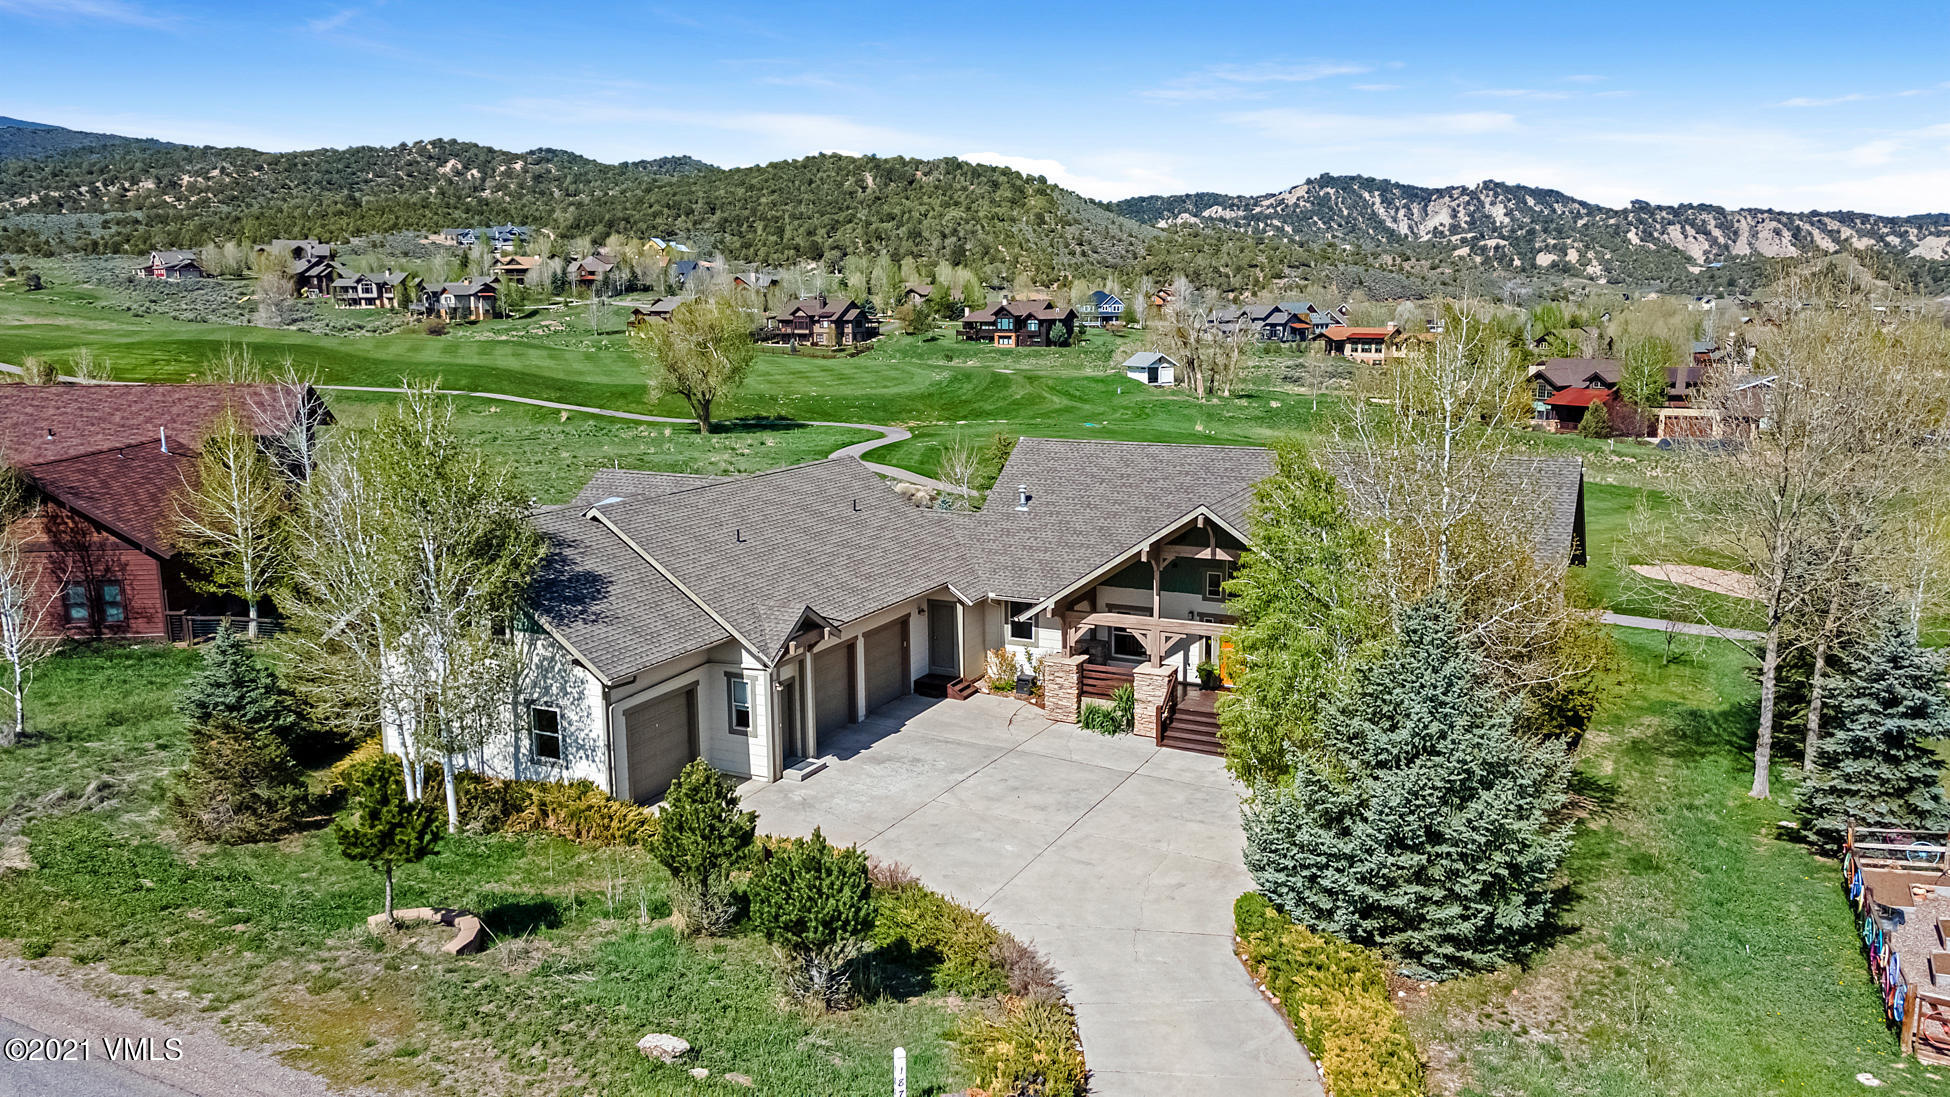 Spectacular Eagle Ranch 6-bedroom Custom Home. A Grand entryway with tall ceilings and commanding views of Eagle Ranch Golf Course, Castle Peak and surrounding mountain ranges. This home's sundrenched great room with panoramic windows and a wraparound deck provides plenty of space for entertainment. A unique floor plan offers 3- bedrooms on the main entry level (including a primary bedroom).There is an open kitchen with island and a dedicated office and laundry room.  The lower walkout terrace offers a 1-bedroom mother-in-law suite with kitchenette and an additional guest bedroom or bonus room.Above the 3-car garage is a spacious 1 bedroom lock-off apartment perfect for additional income with a proven rental history.Enjoy this mountain lifestyle filled with outdoor fun, just outside your door. Eagle Ranch is two hours West of Denver, only 30 minutes to world class skiing in Vail and 6 miles to the Eagle County Airport. Eagle Ranch is a Colorado Mountain Town known for its fantastic community, lower elevation and warmer temperatures. This Eagle Ranch treasure is central to all Colorado has to offer. Taking Back-Up Offers